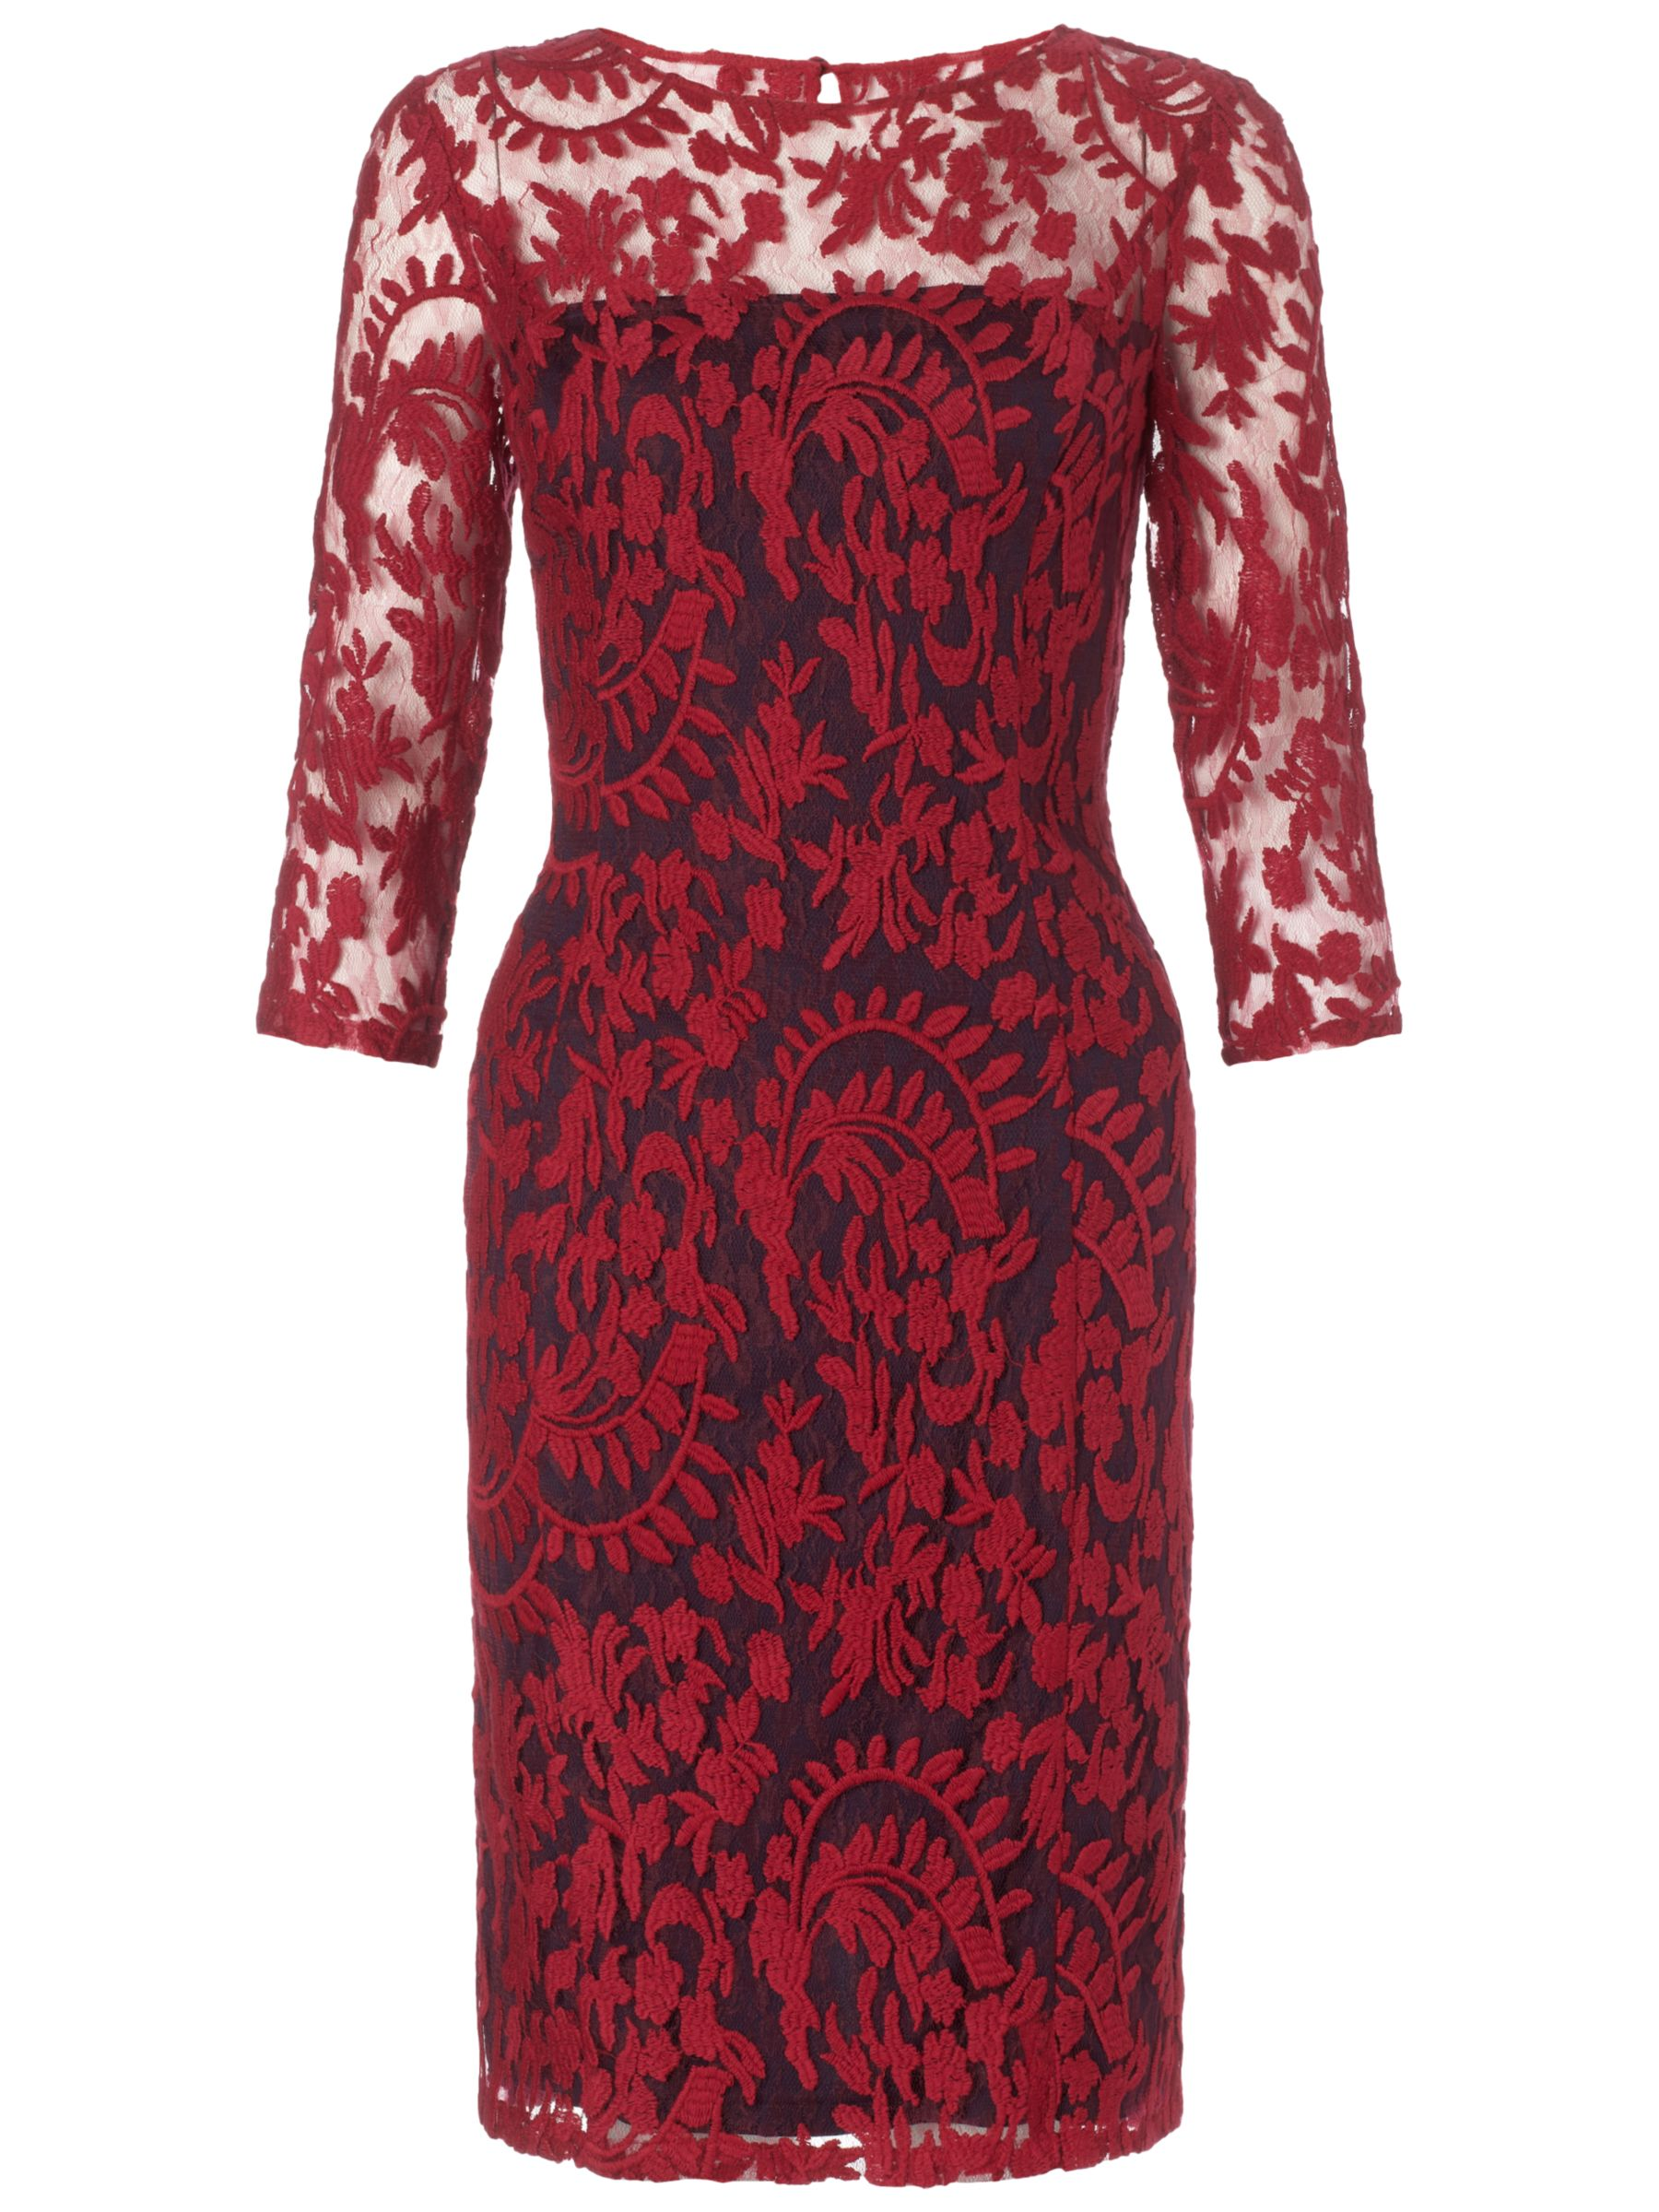 Adrianna Papell Two Tone Embroidered Lace Dress, Chianti